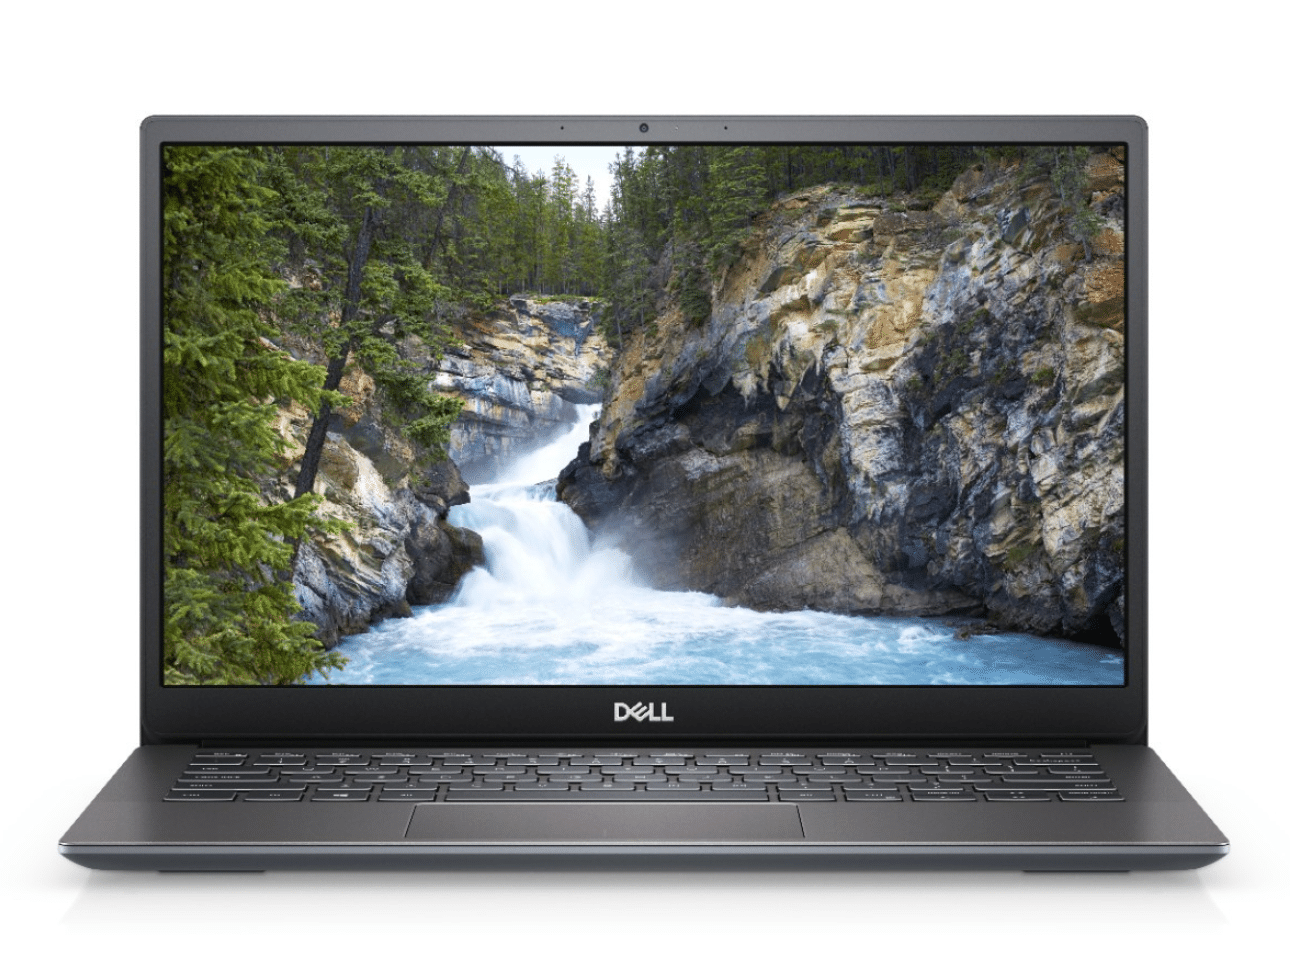 Dell Vostro 13 5930/15 7590, Ultrabook Coffee Lake R GTX 1650 / MX250